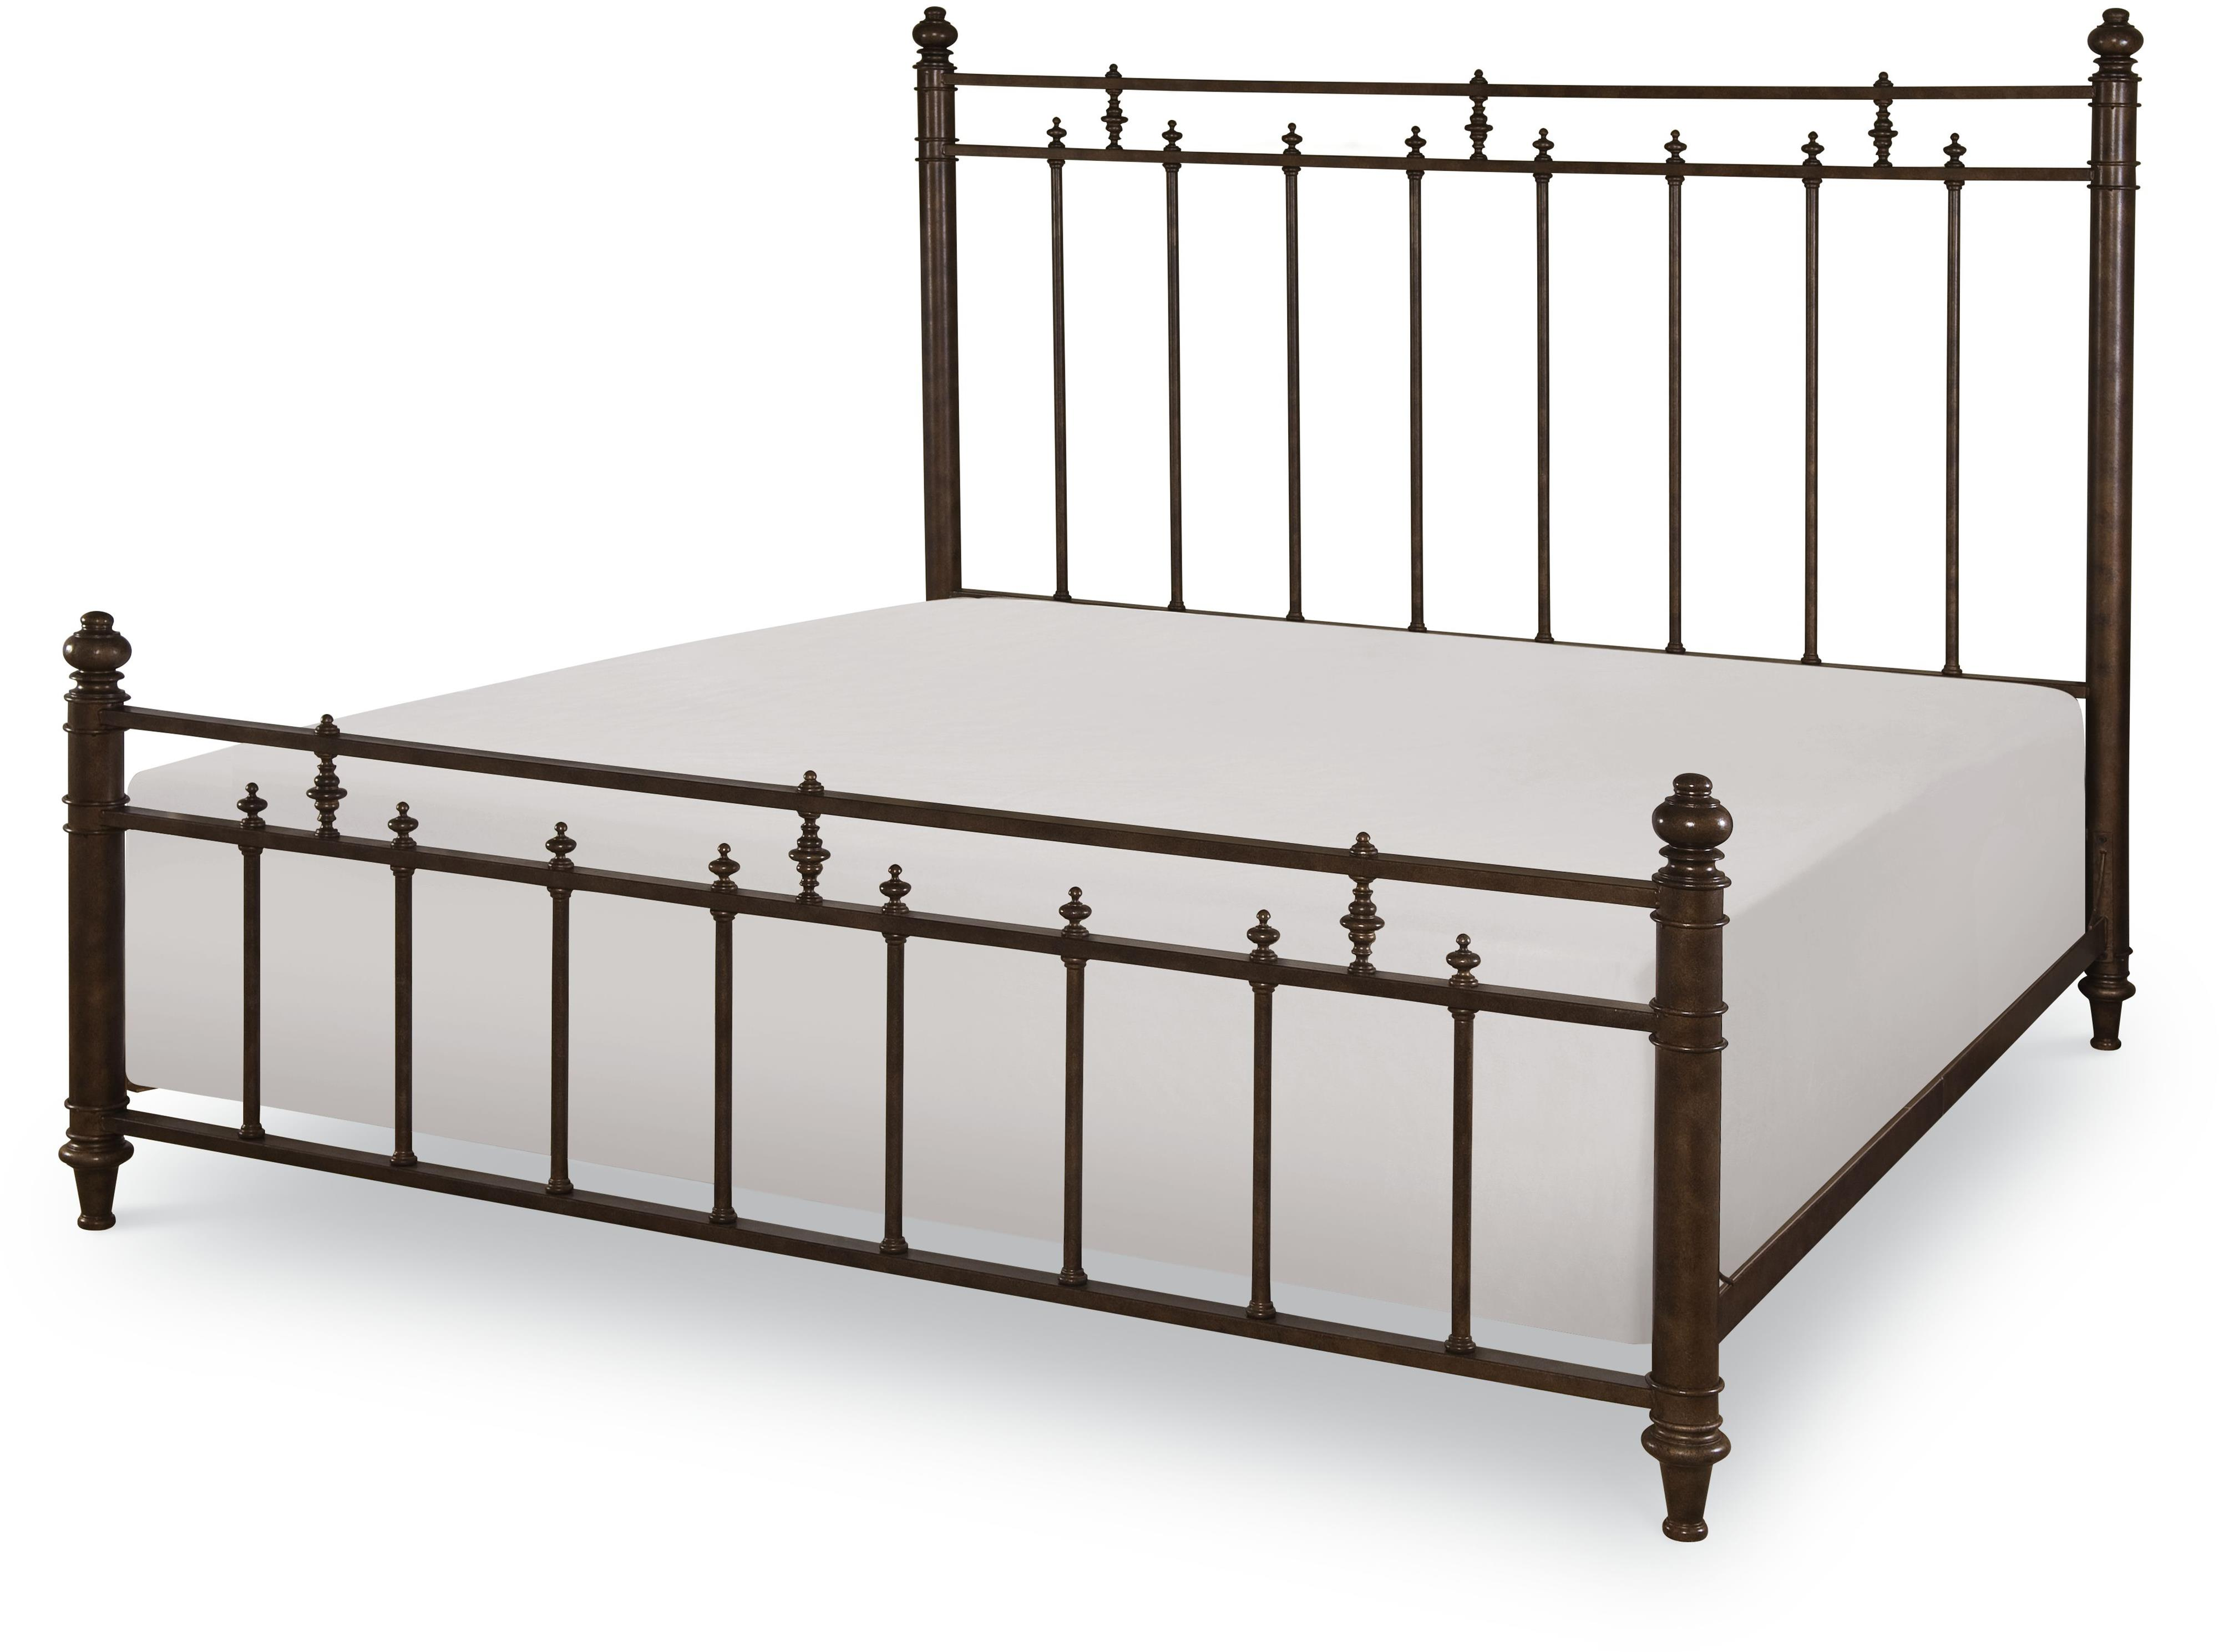 Legacy Classic Barrington Farm King Metal Bed - Item Number: 5200-5006